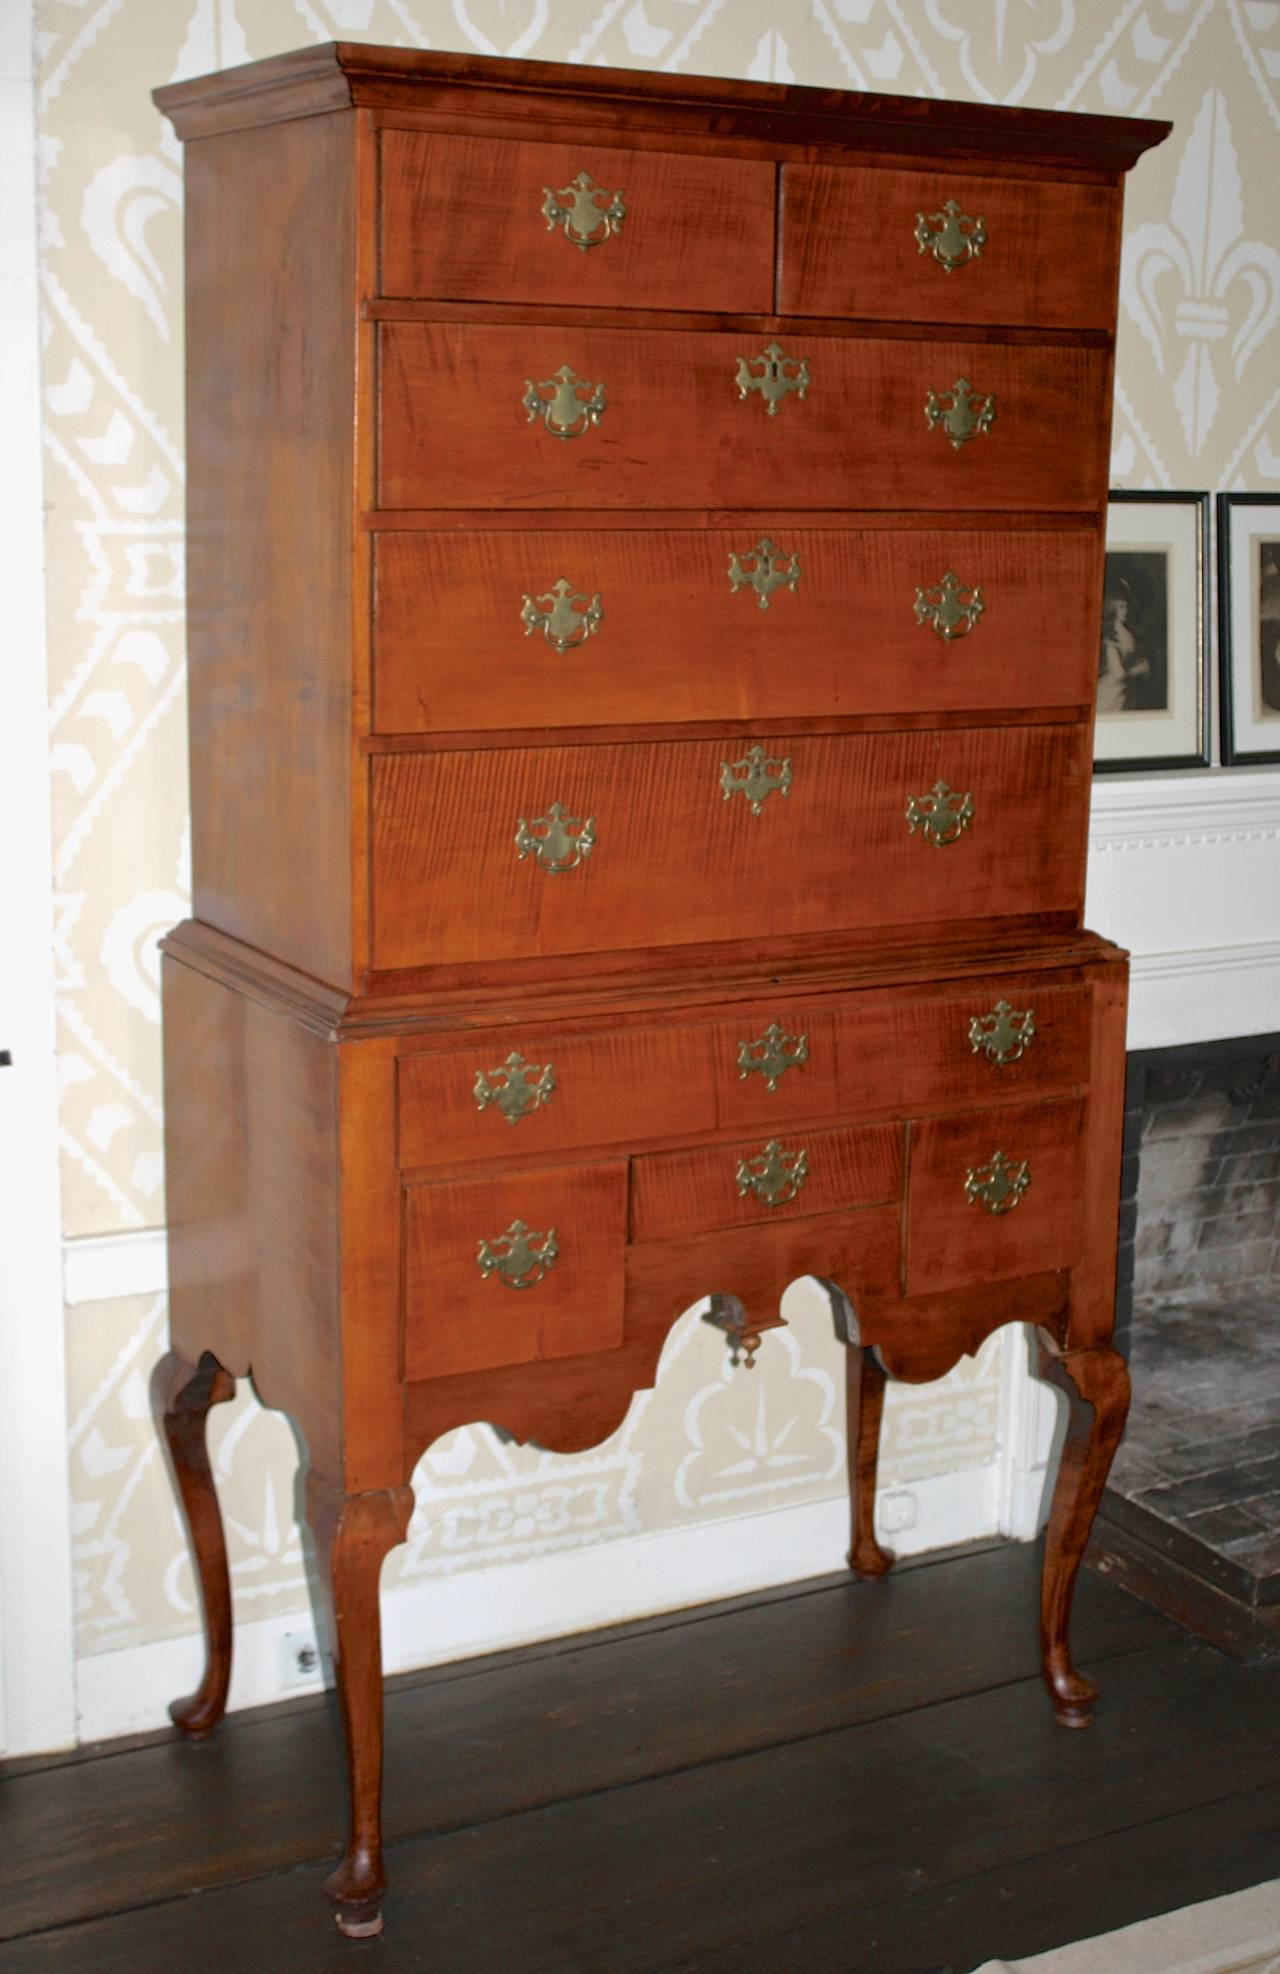 American Colonial Newport Queen Anne Tiger Maple Highboy - Christopher Townsend Shop For Sale